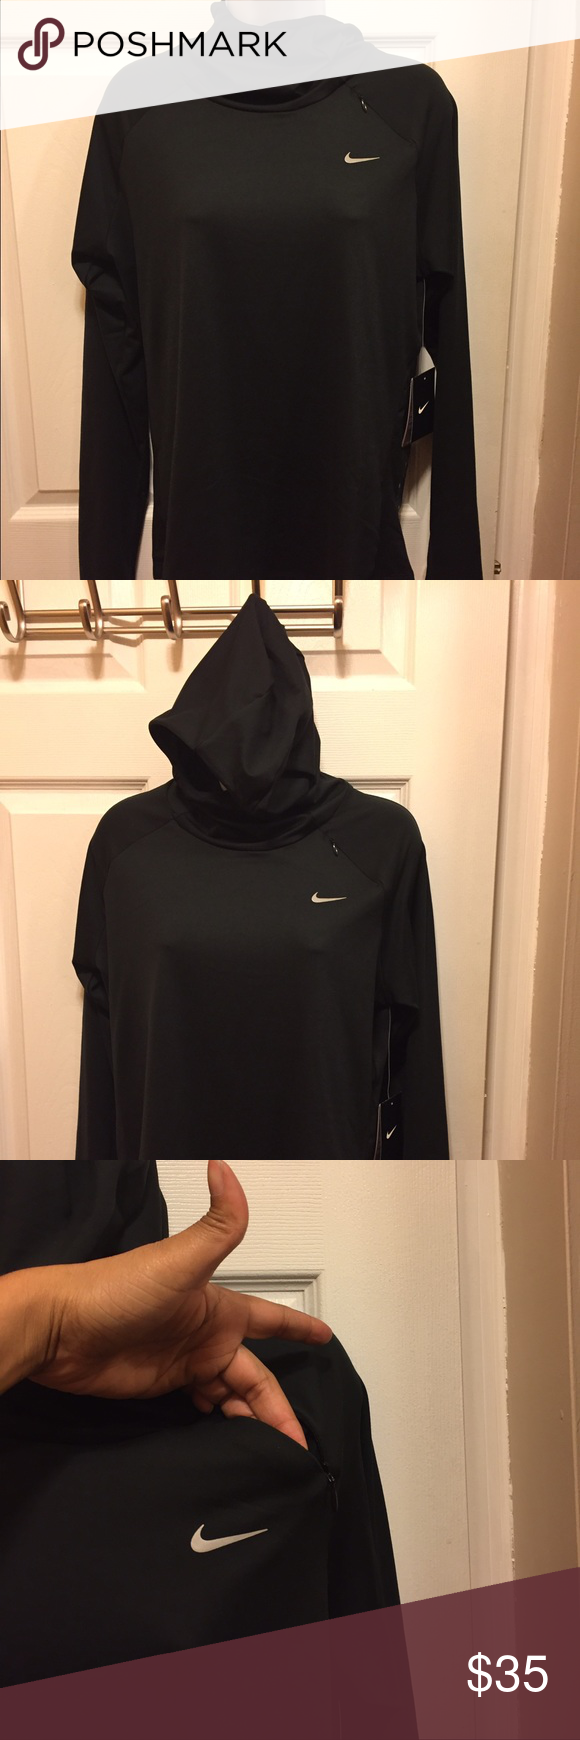 Nike dri fit hoody Brand new dri fit hoody/ never worn/size large/ front chest pocket/ thumb holes on sleeve/ perfect condition Nike Tops Sweatshirts & Hoodies